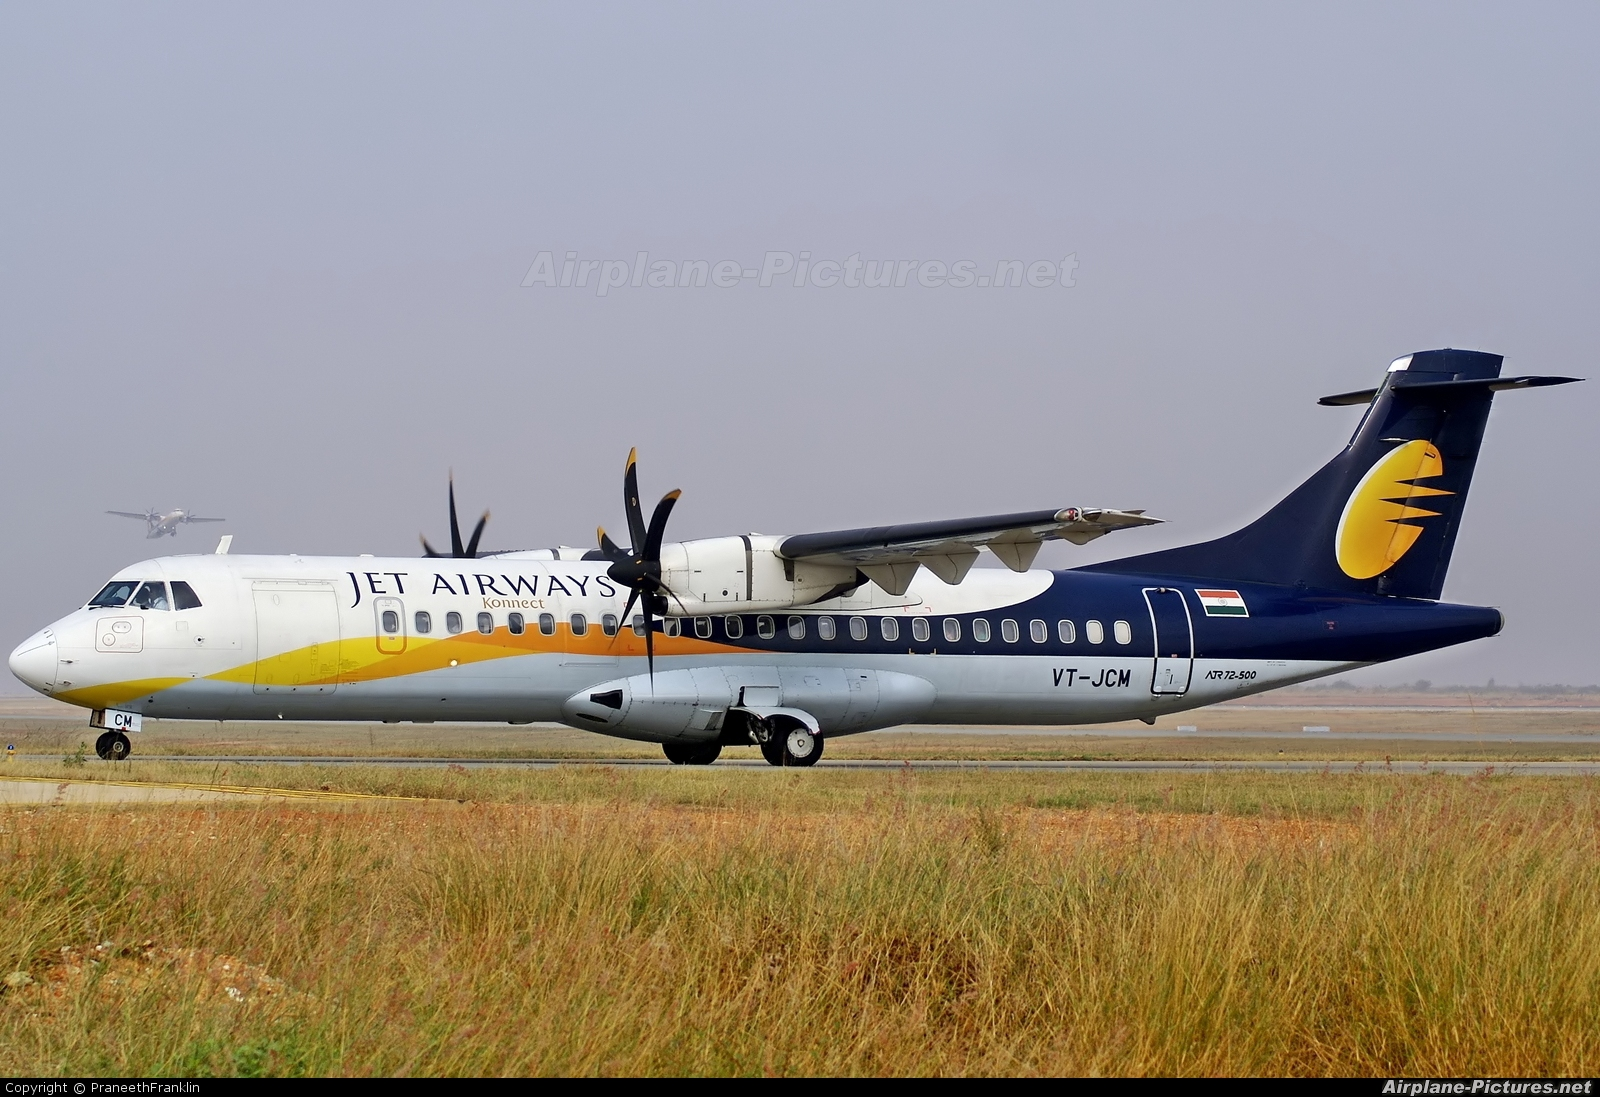 Jet Airways to roll out new ticket pricing structure